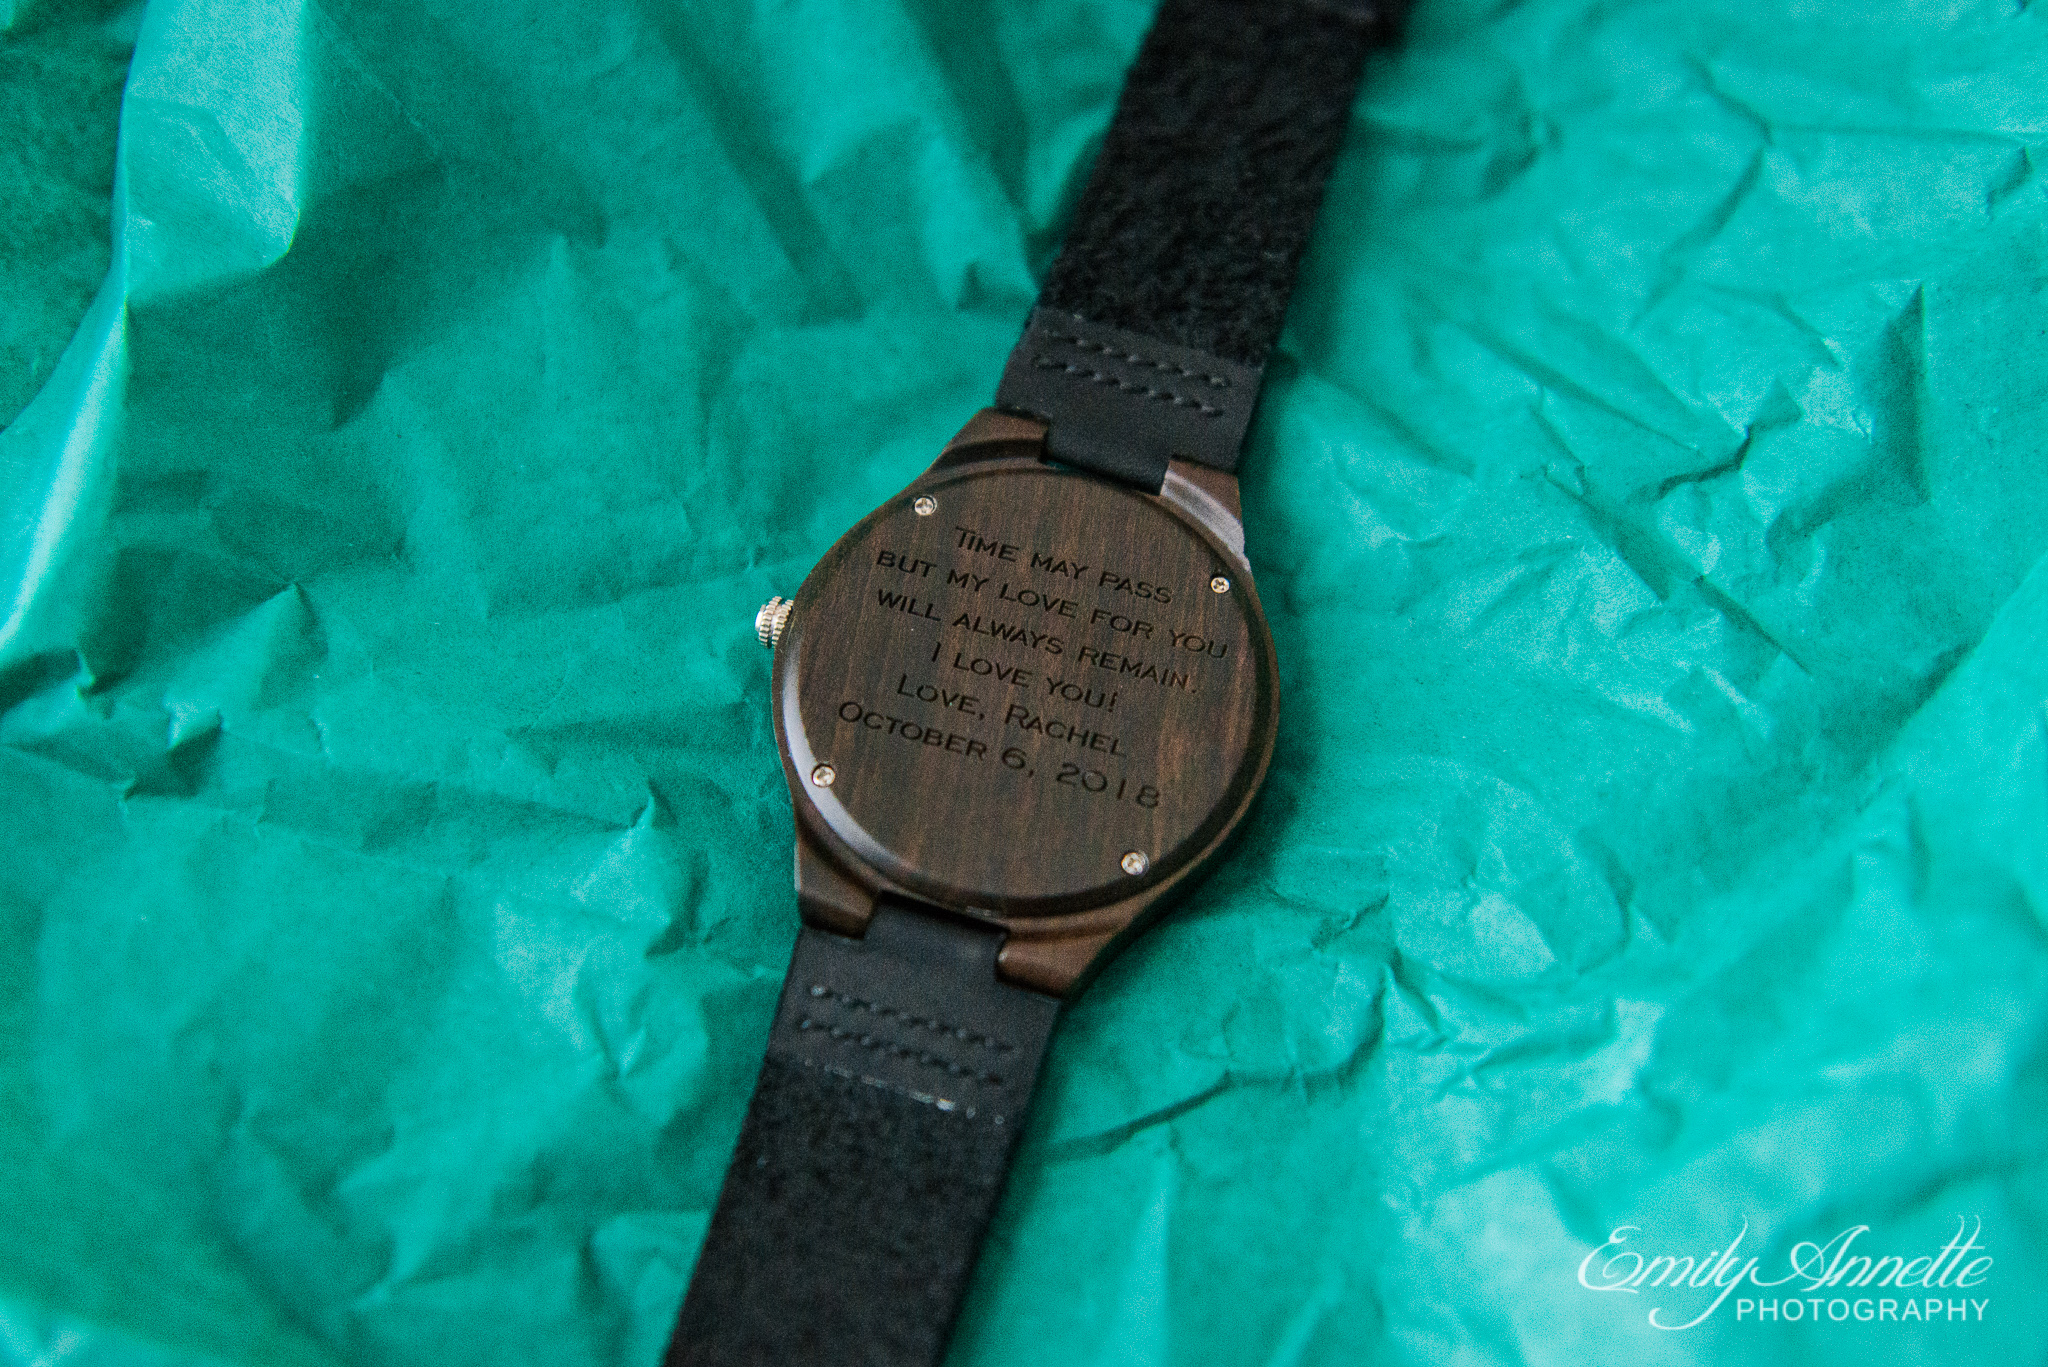 A personalized engraved wooden watch given to the groom from the bride before their wedding ceremony at Amber Grove near Richmond, Virginia